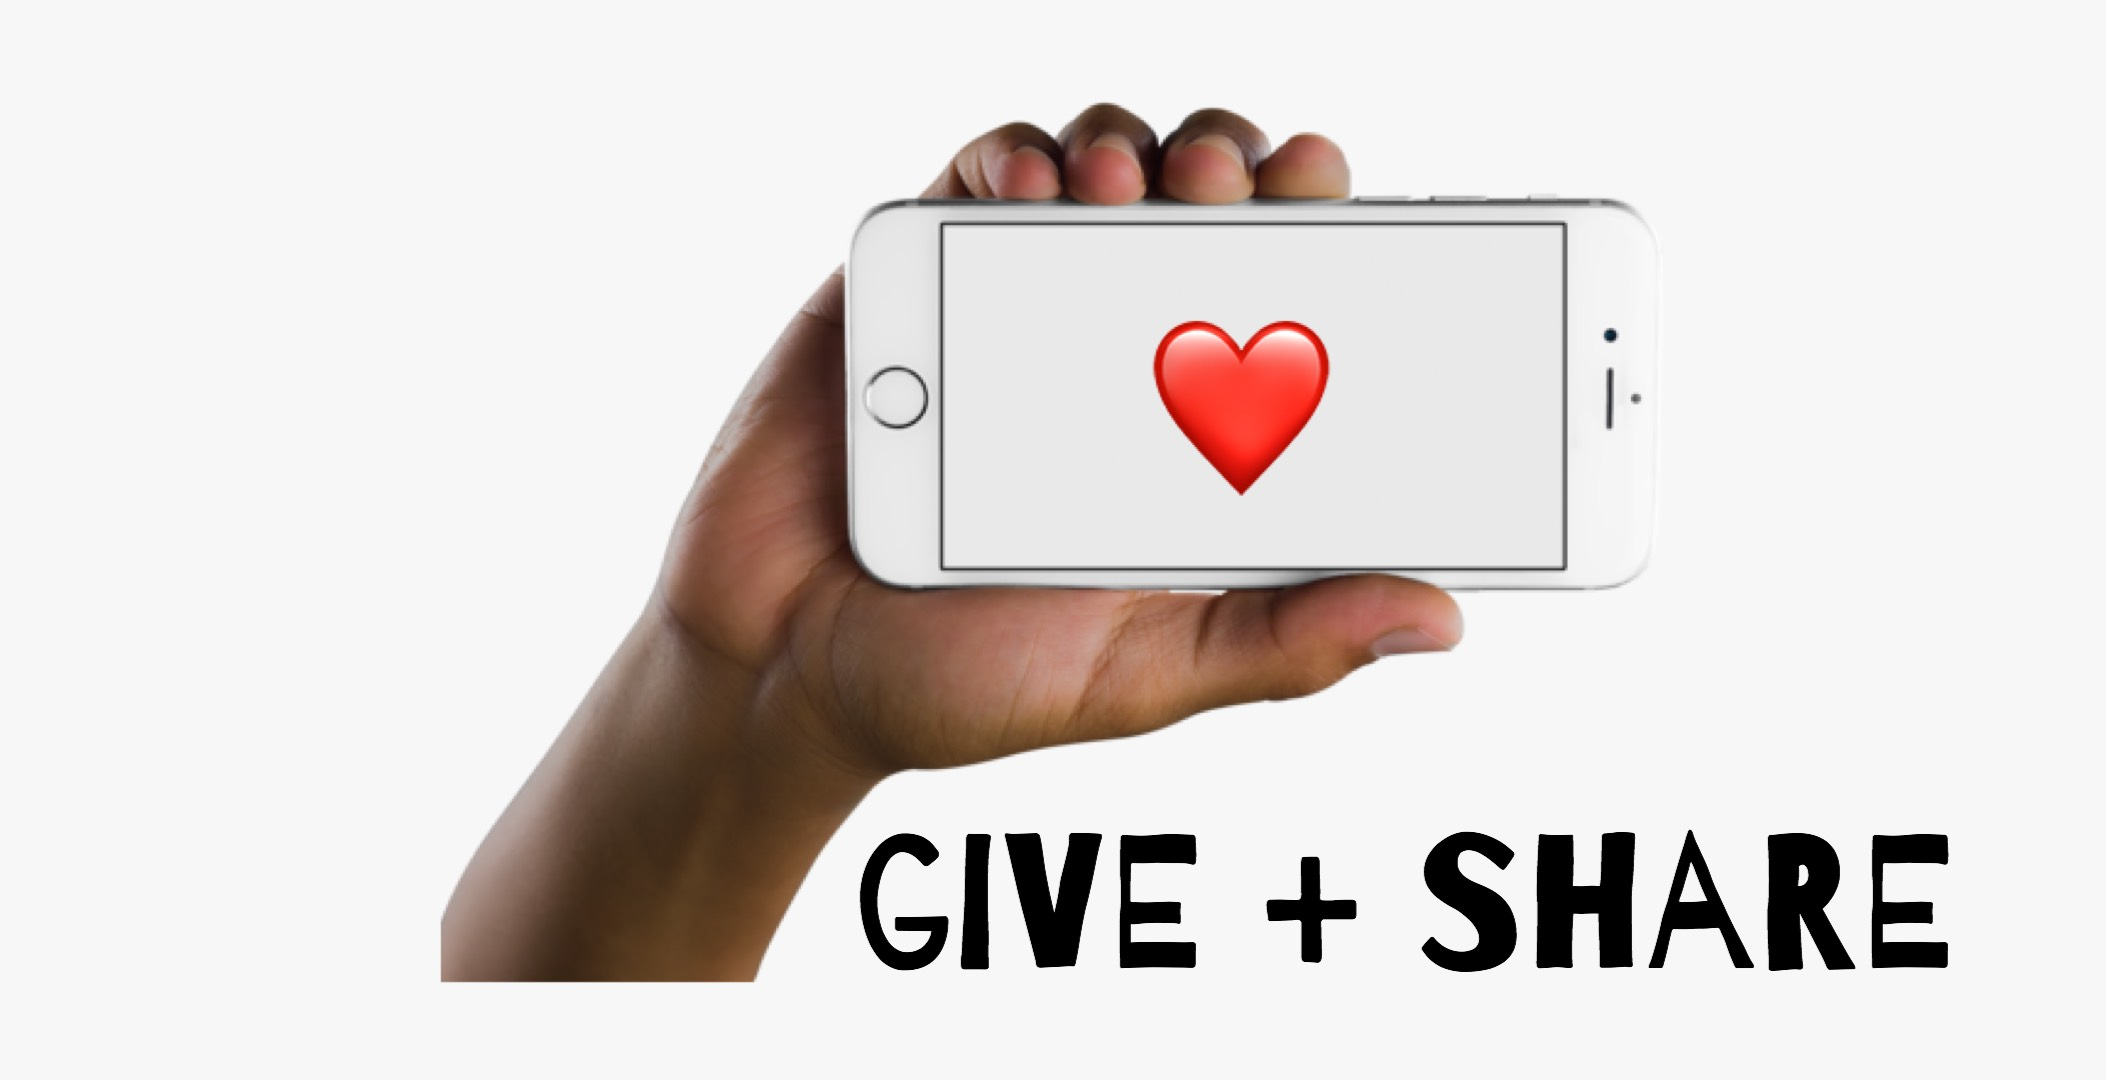 Give + Share Mobile App